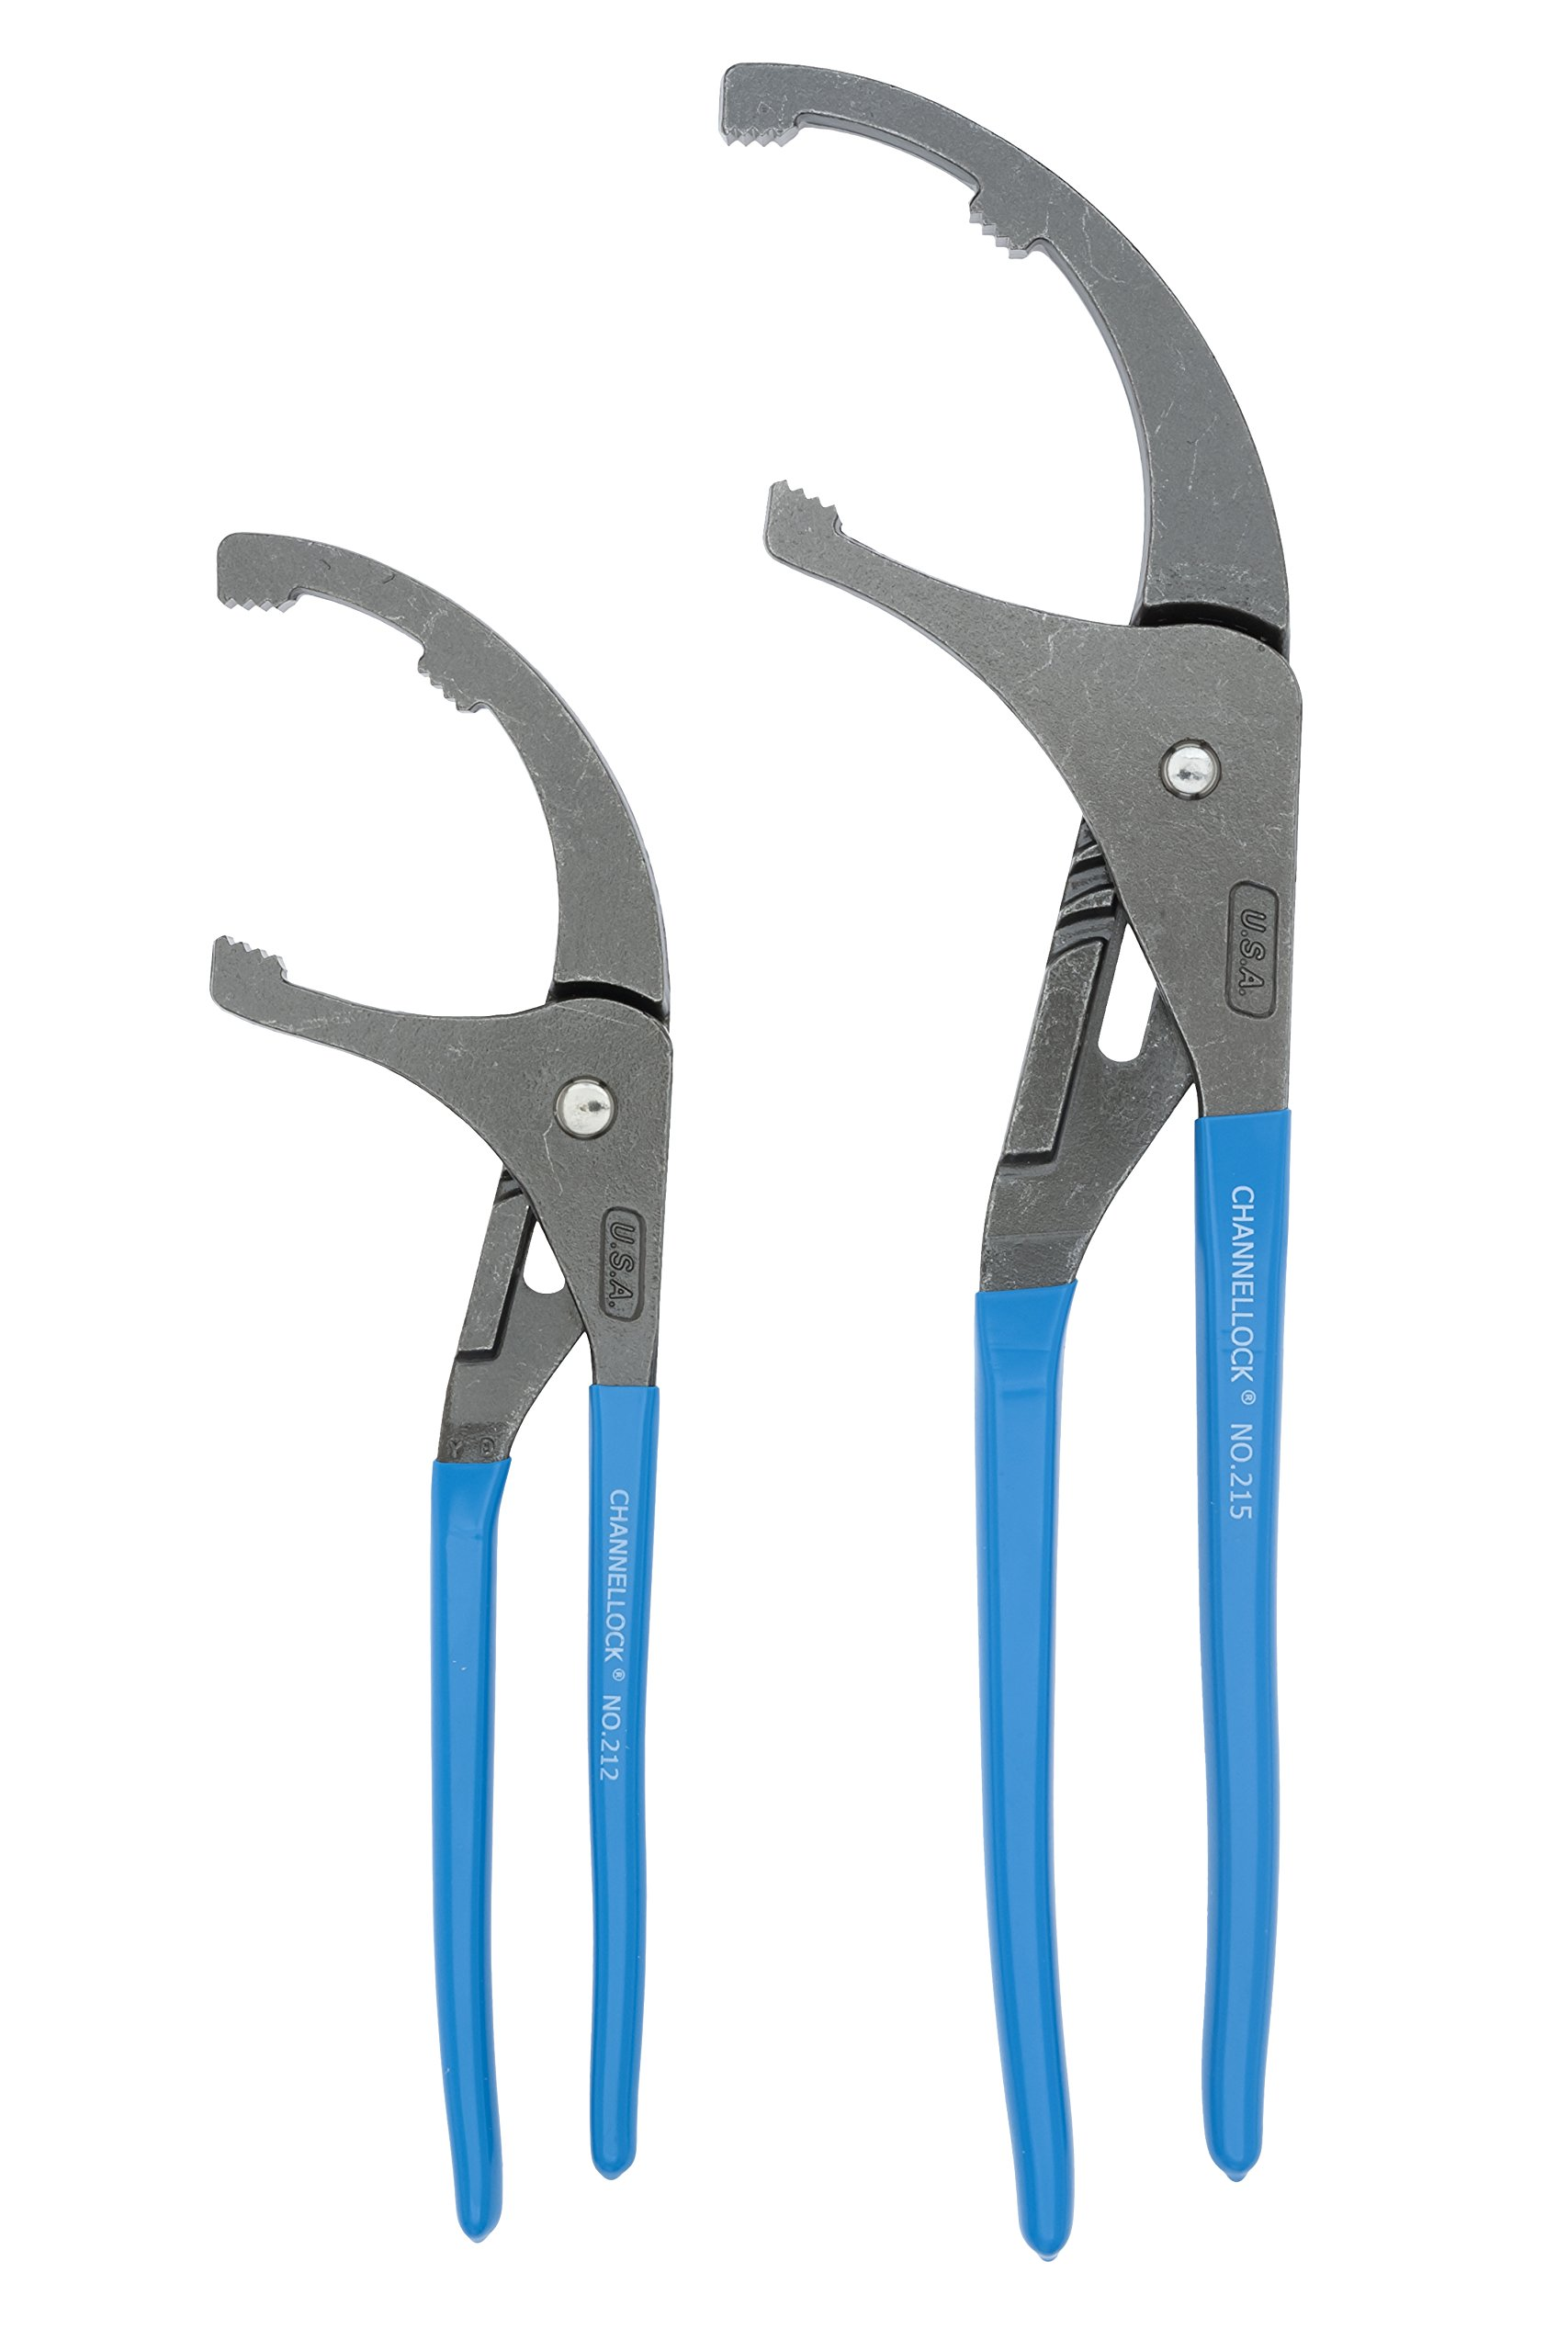 Channellock OF-1 2-Piece Oil Filer/PVC Plier Gift Set: 12-Inch and 15-Inch